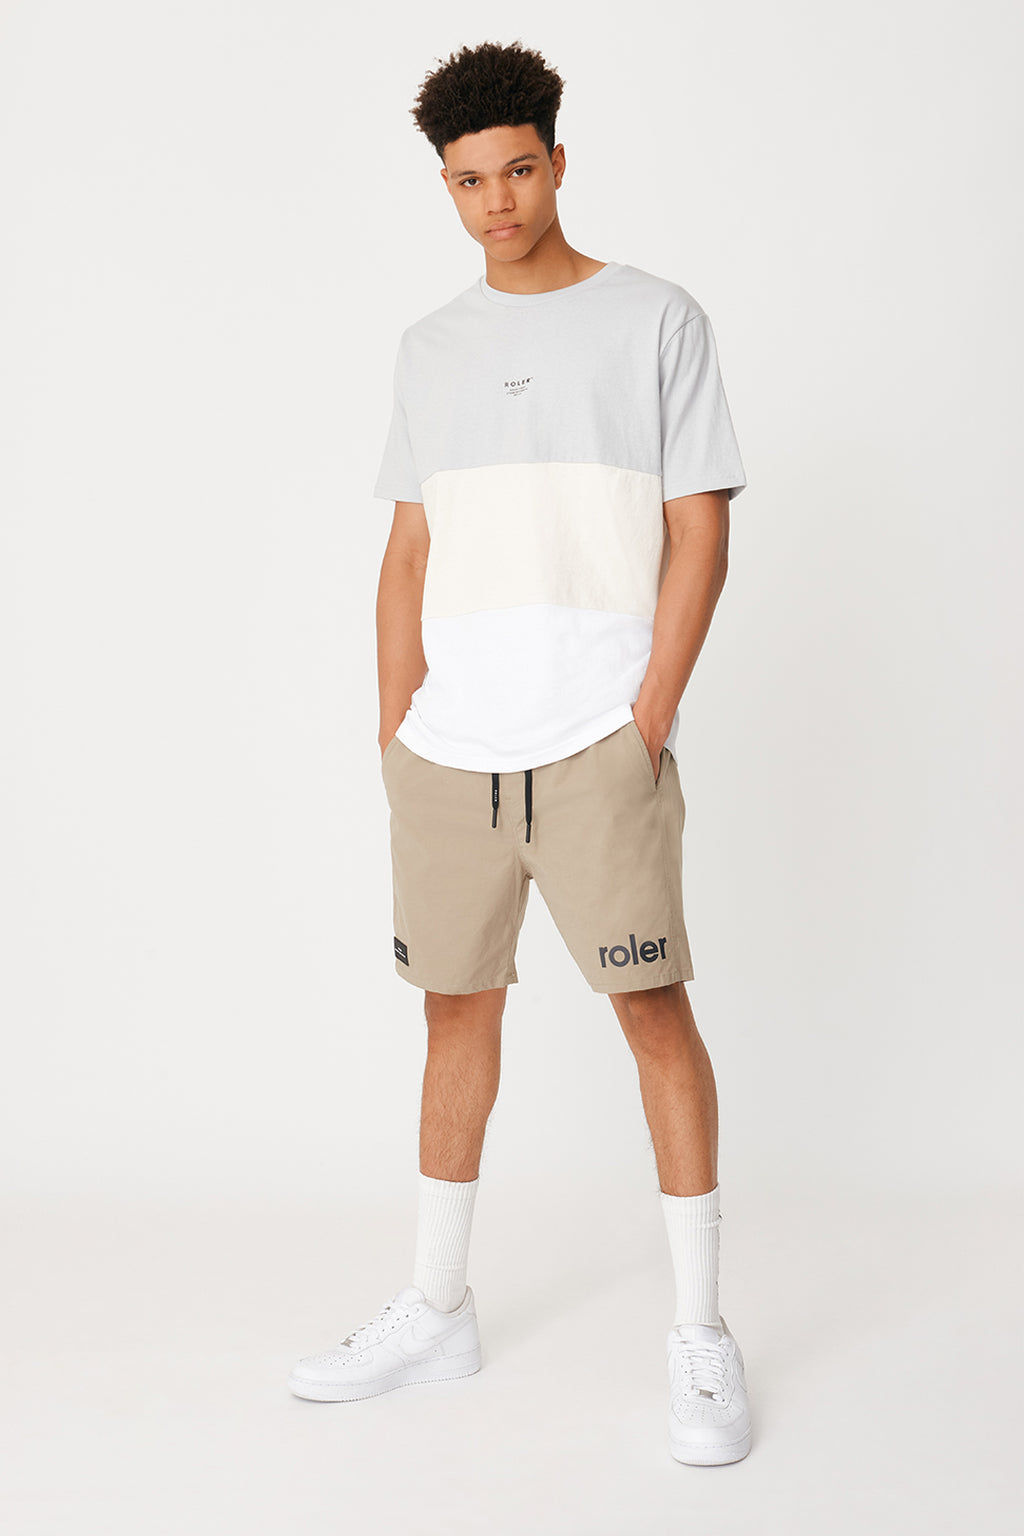 The Van Ness Tee - Light Grey - Roler Clothing